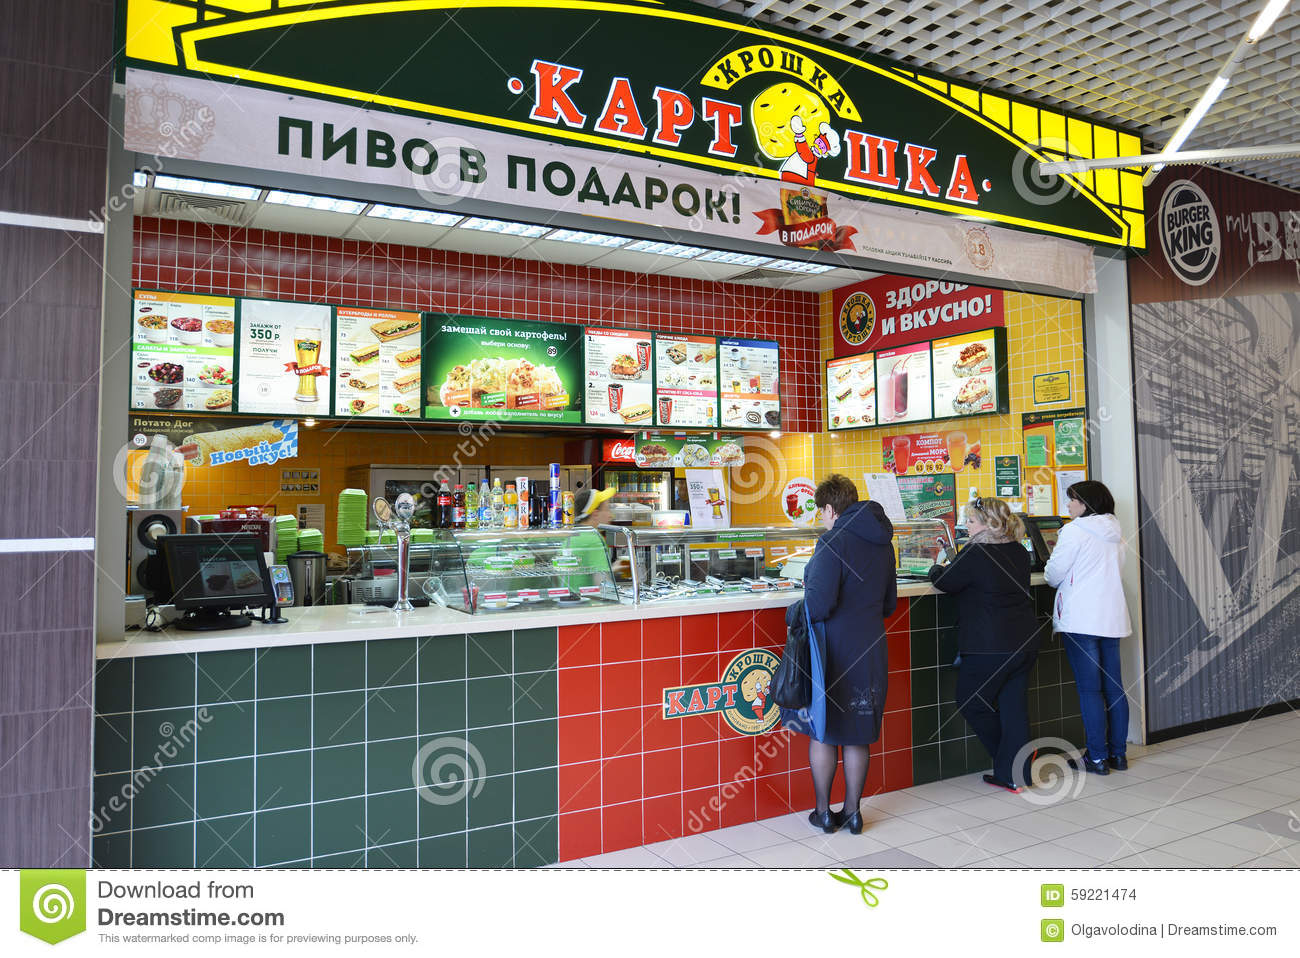 Are there food outlets in Moscow for the homeless